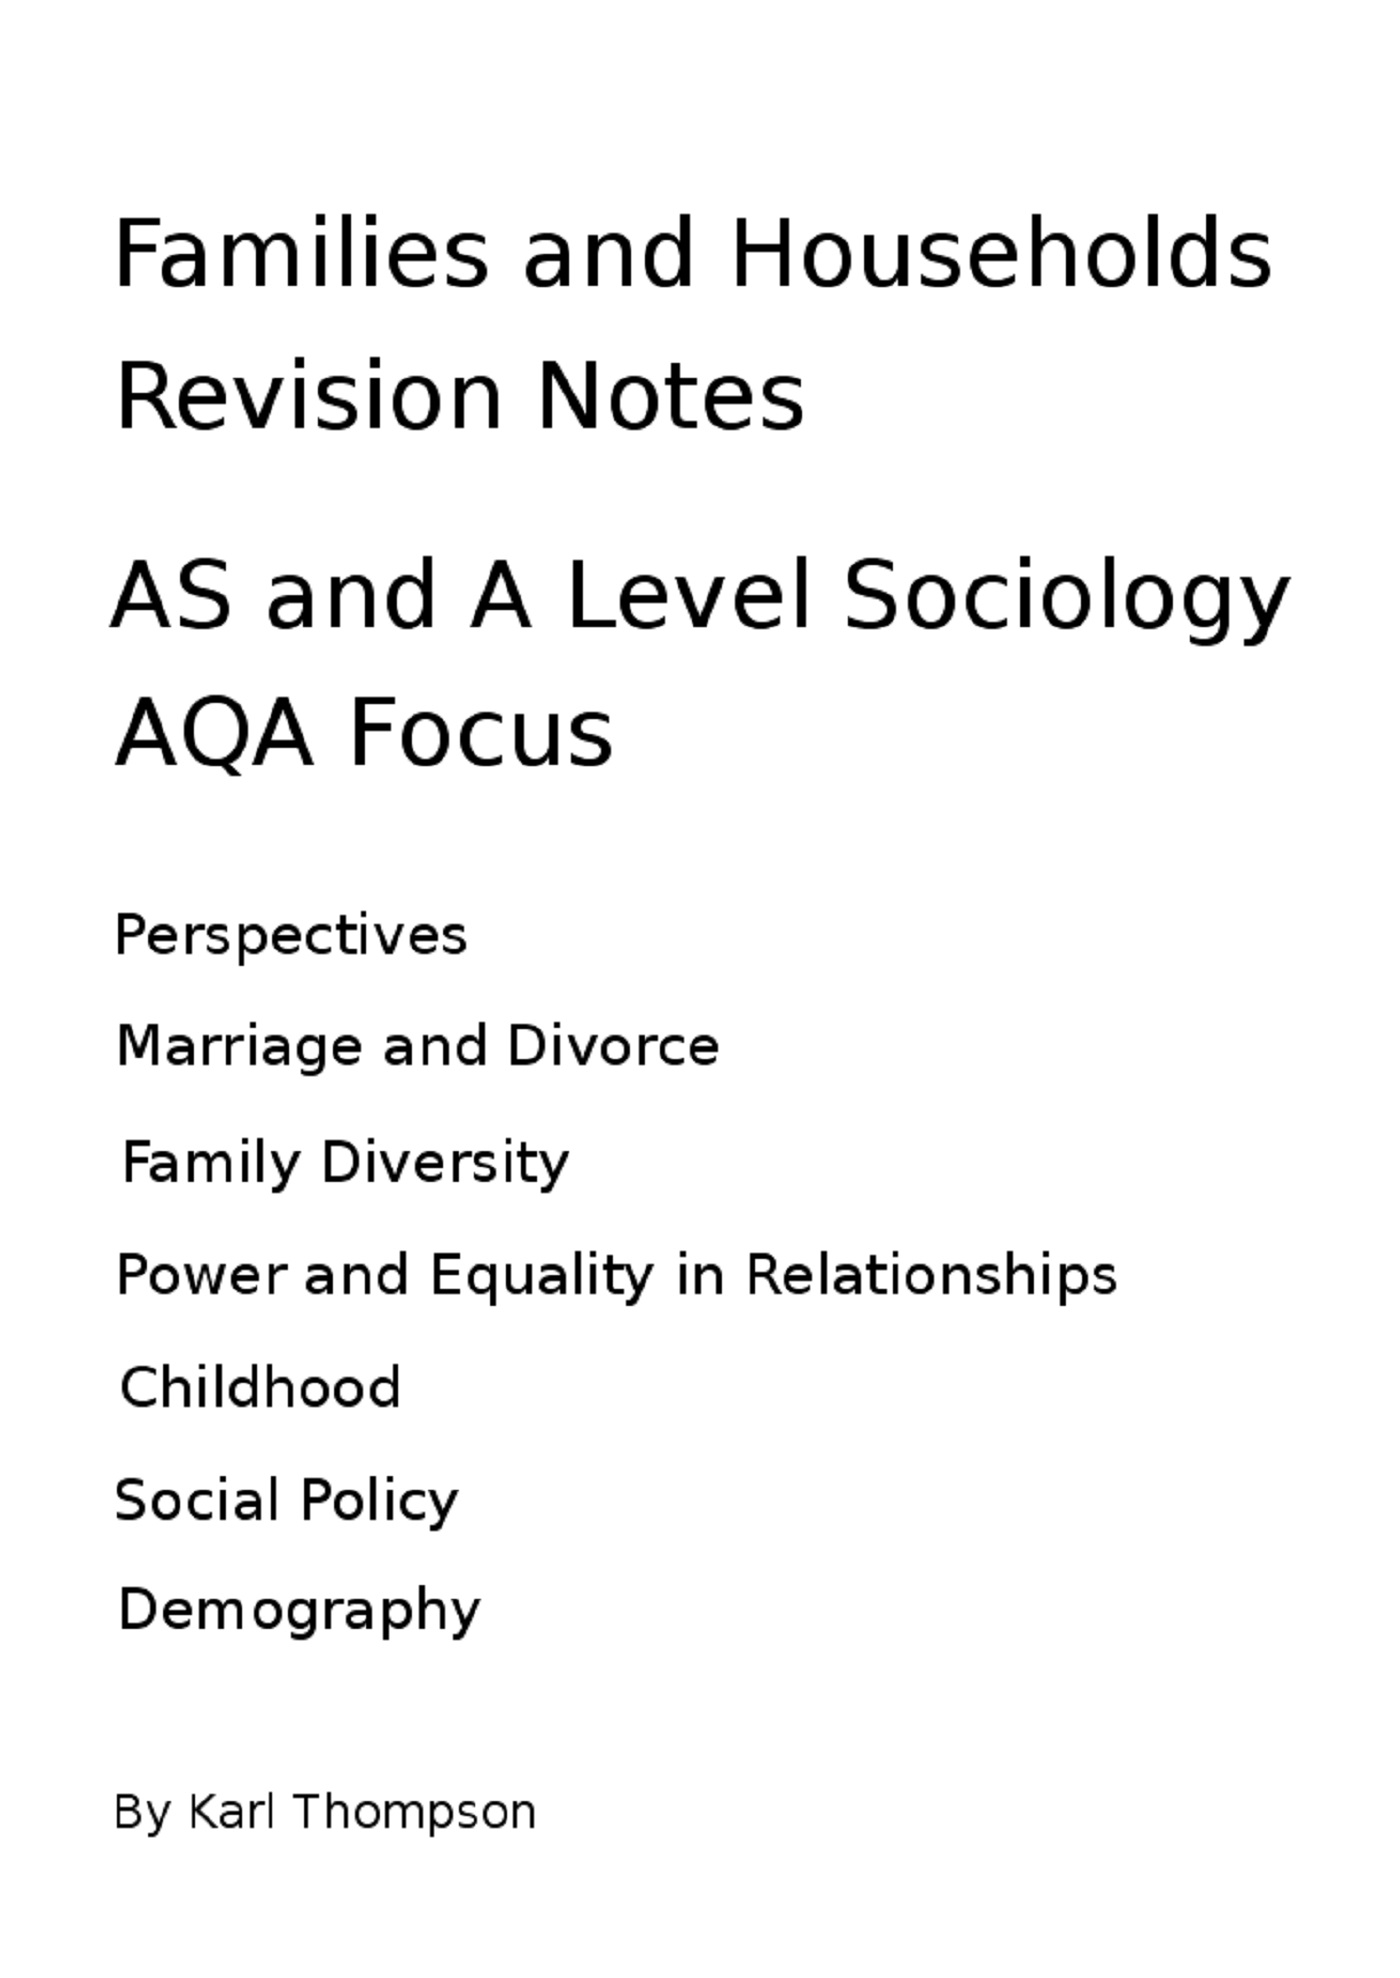 The New Right View Of The Family Revisesociology